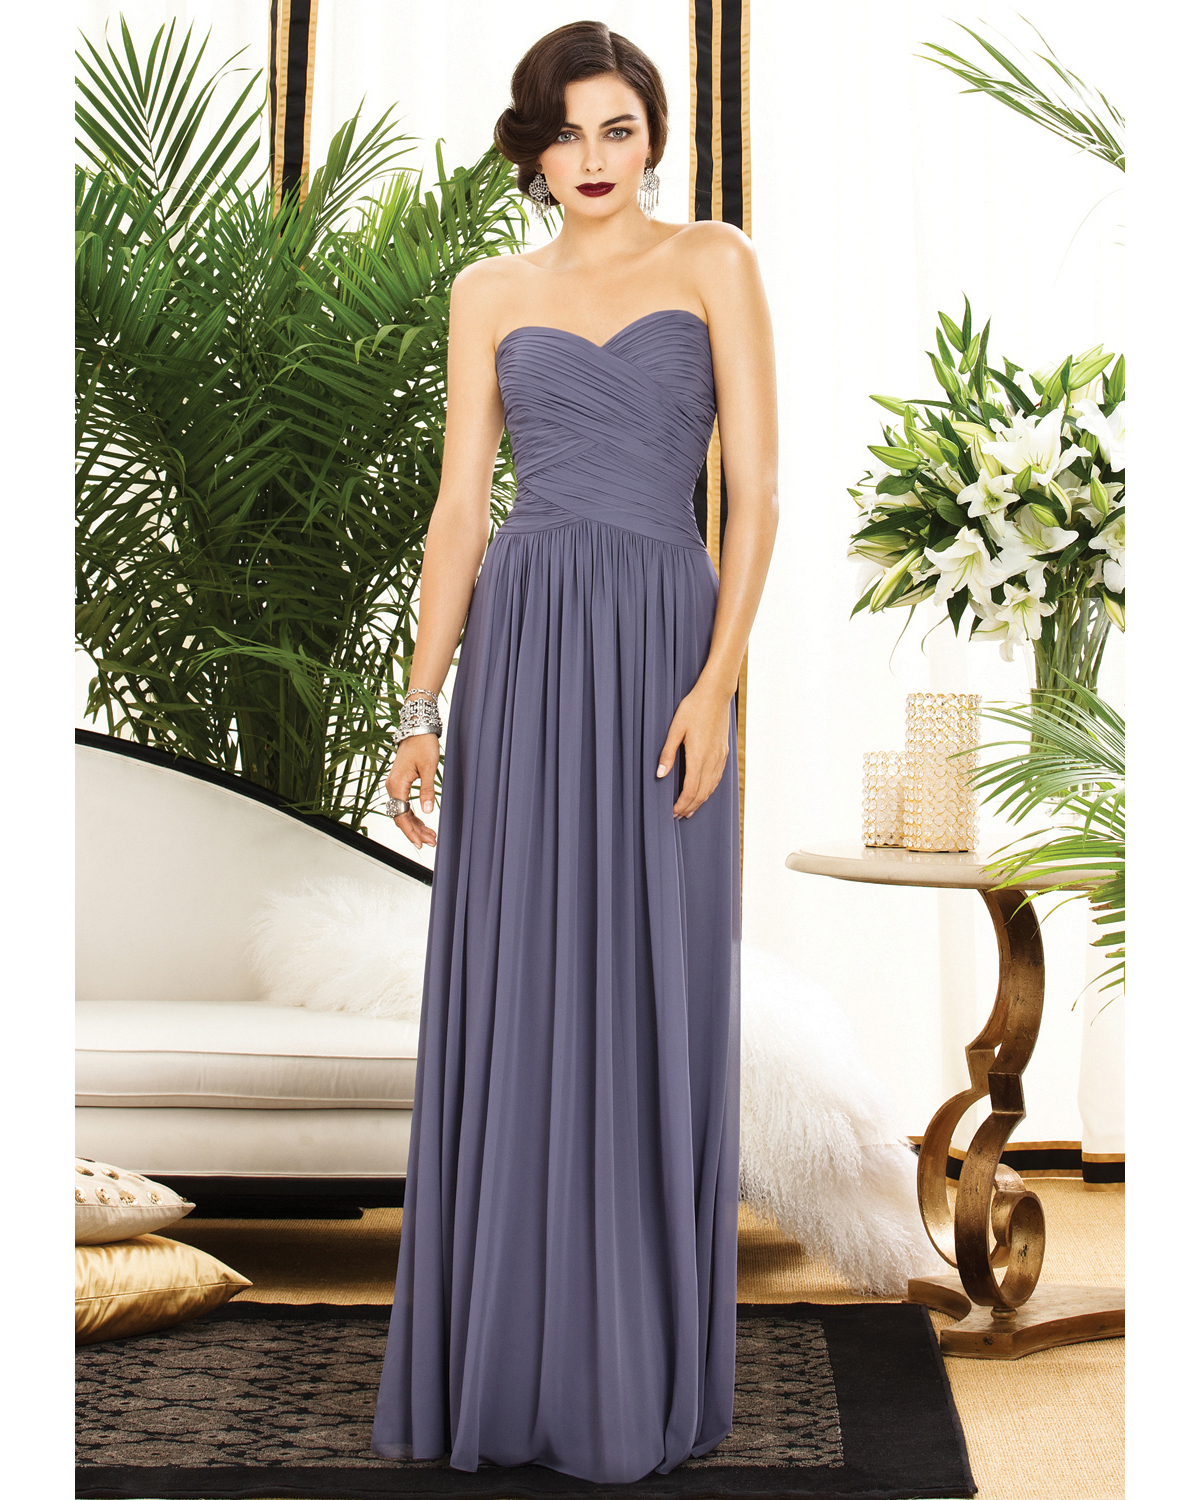 dessy-group-bridal-collection-bridesmaids-dresses-4.jpg